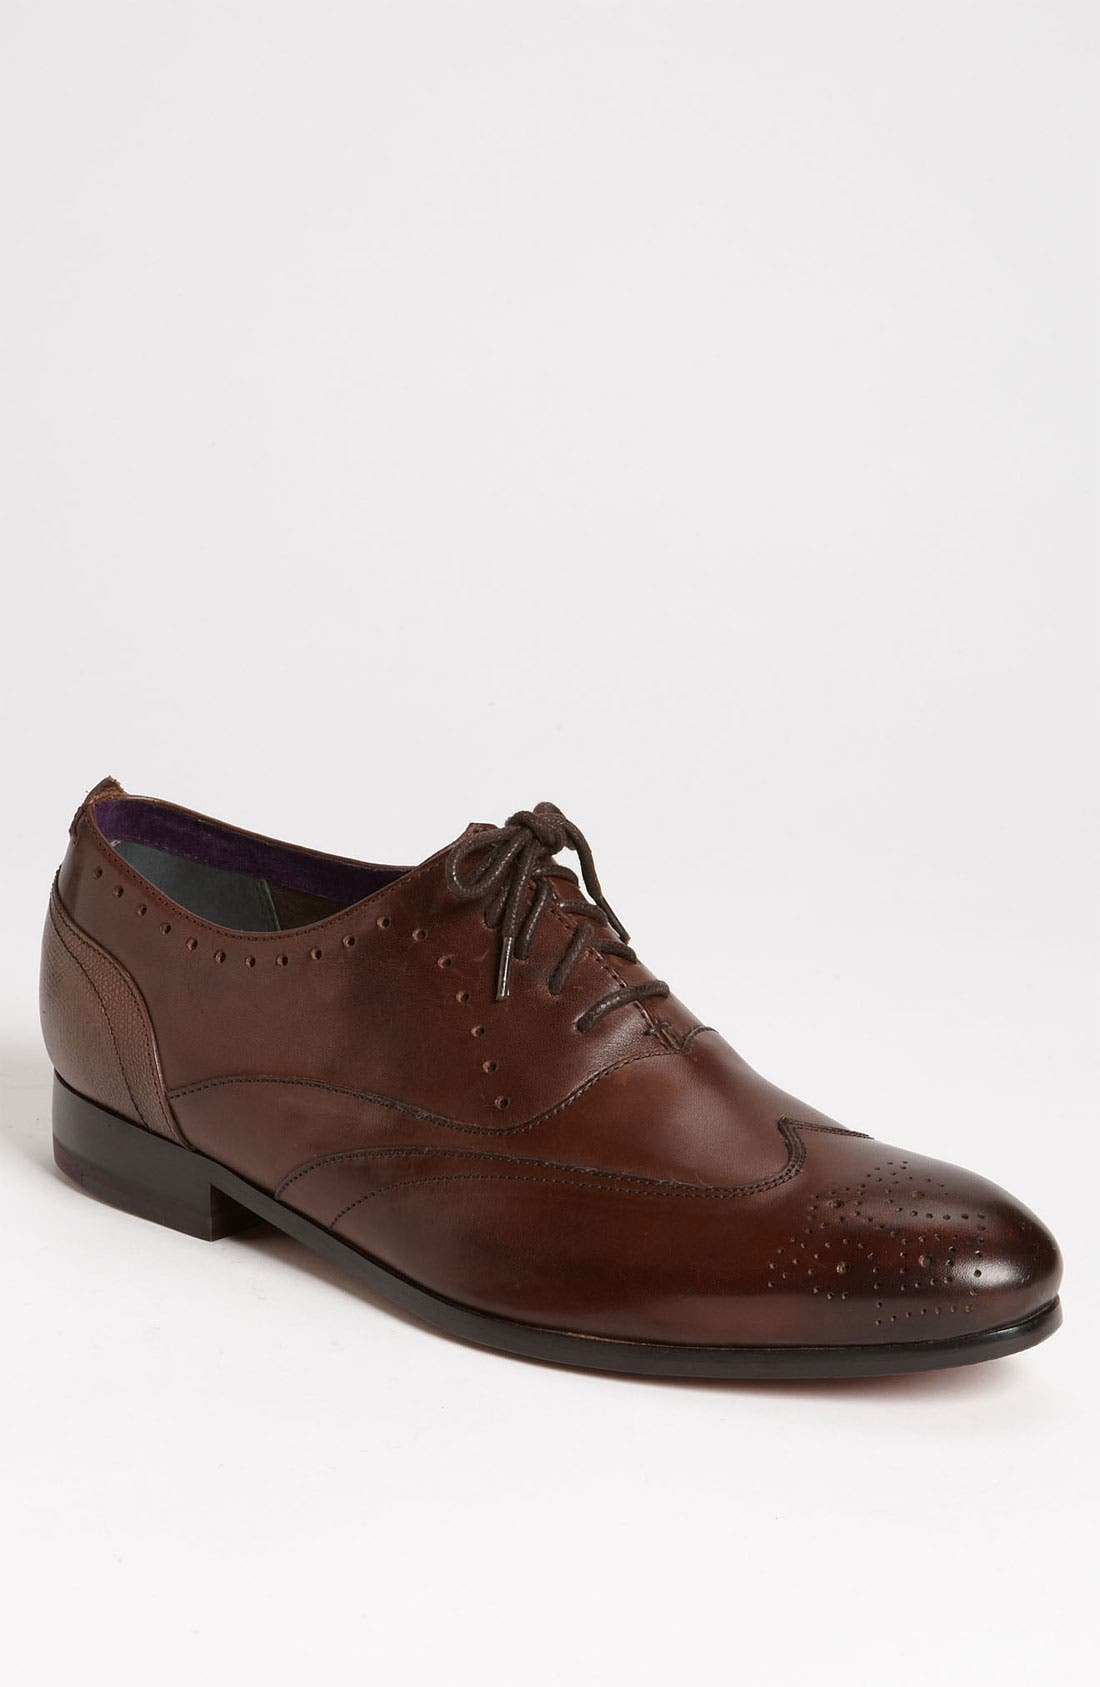 Main Image - Ted Baker London 'Yarr' Oxford